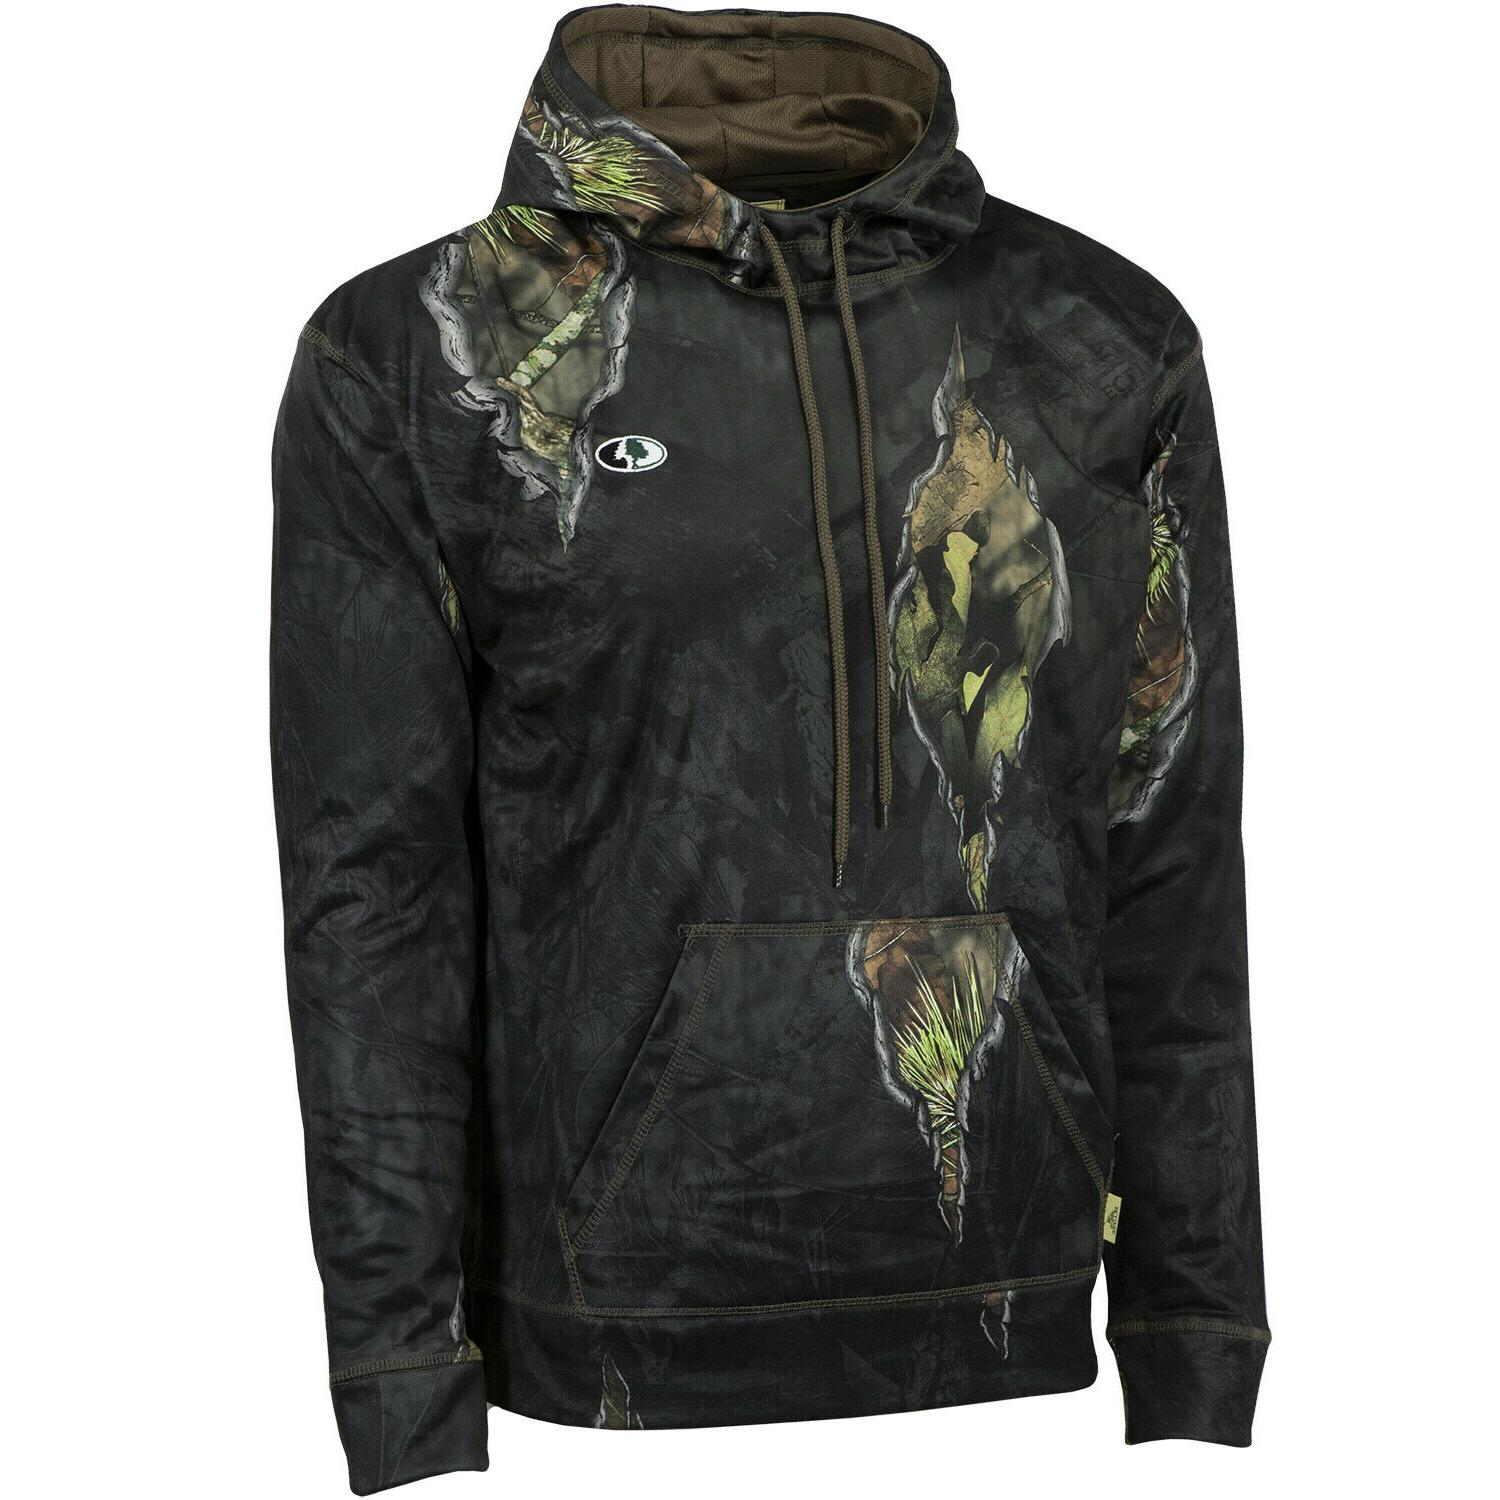 Mossy Fleece Camo Hunting Clothes for